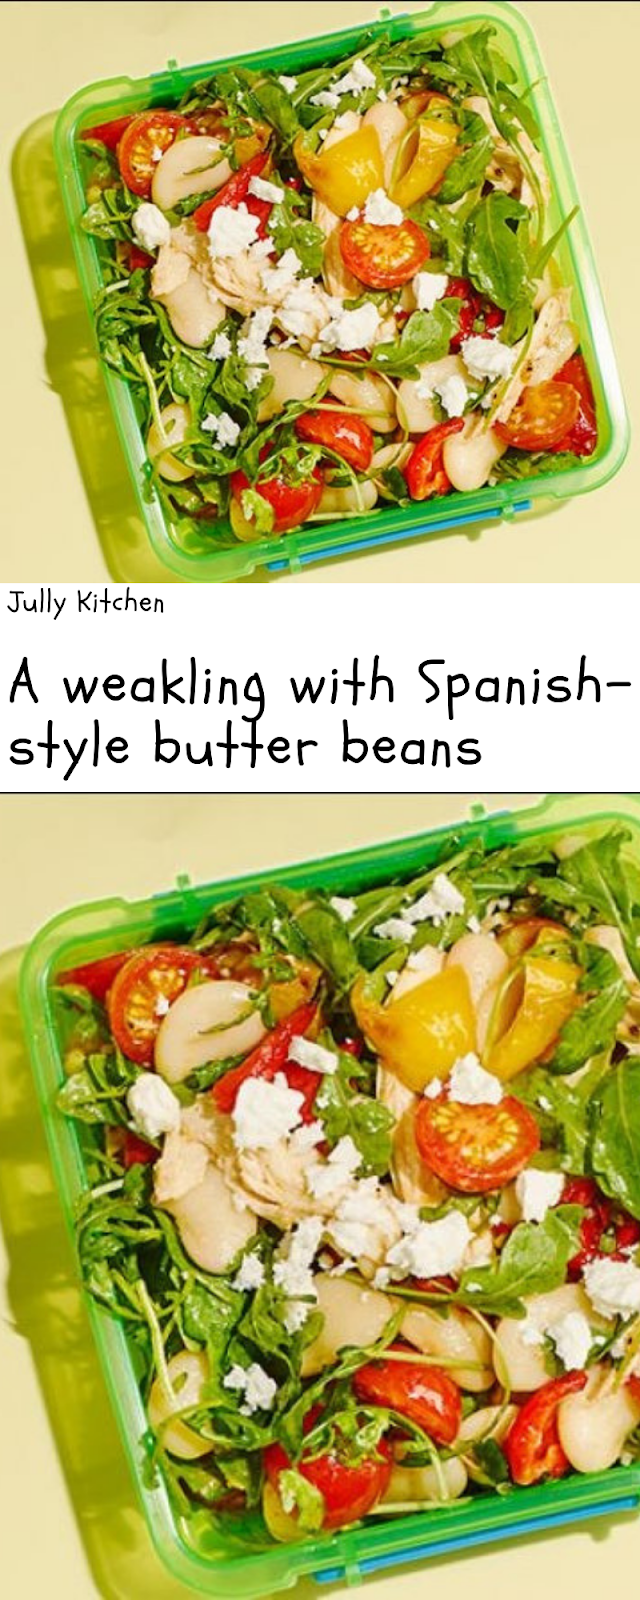 A Weakling With Spanish Style Butter Beans